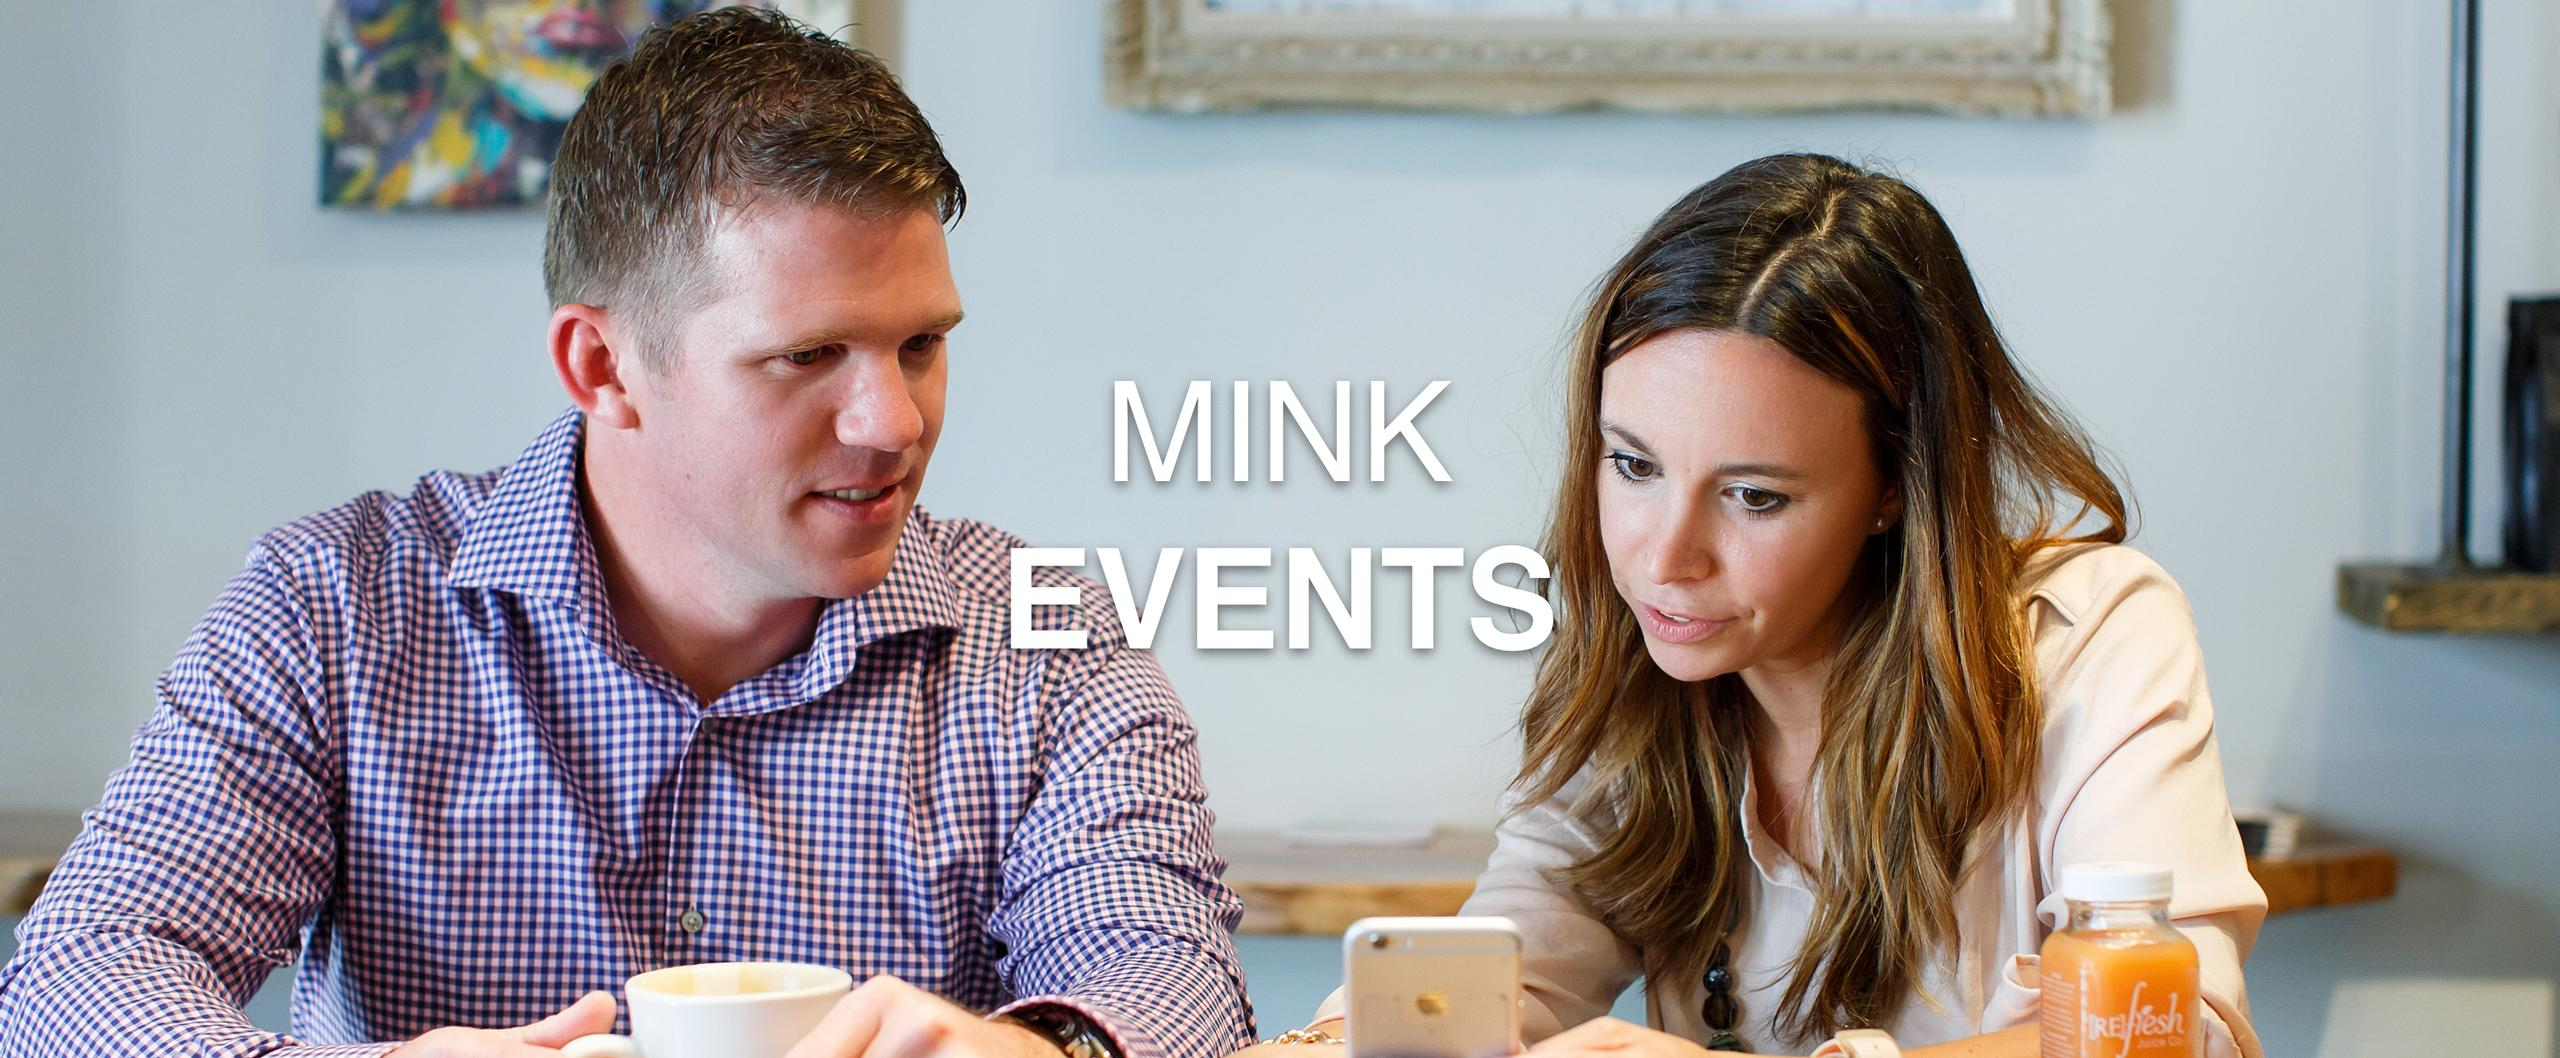 Mink Events